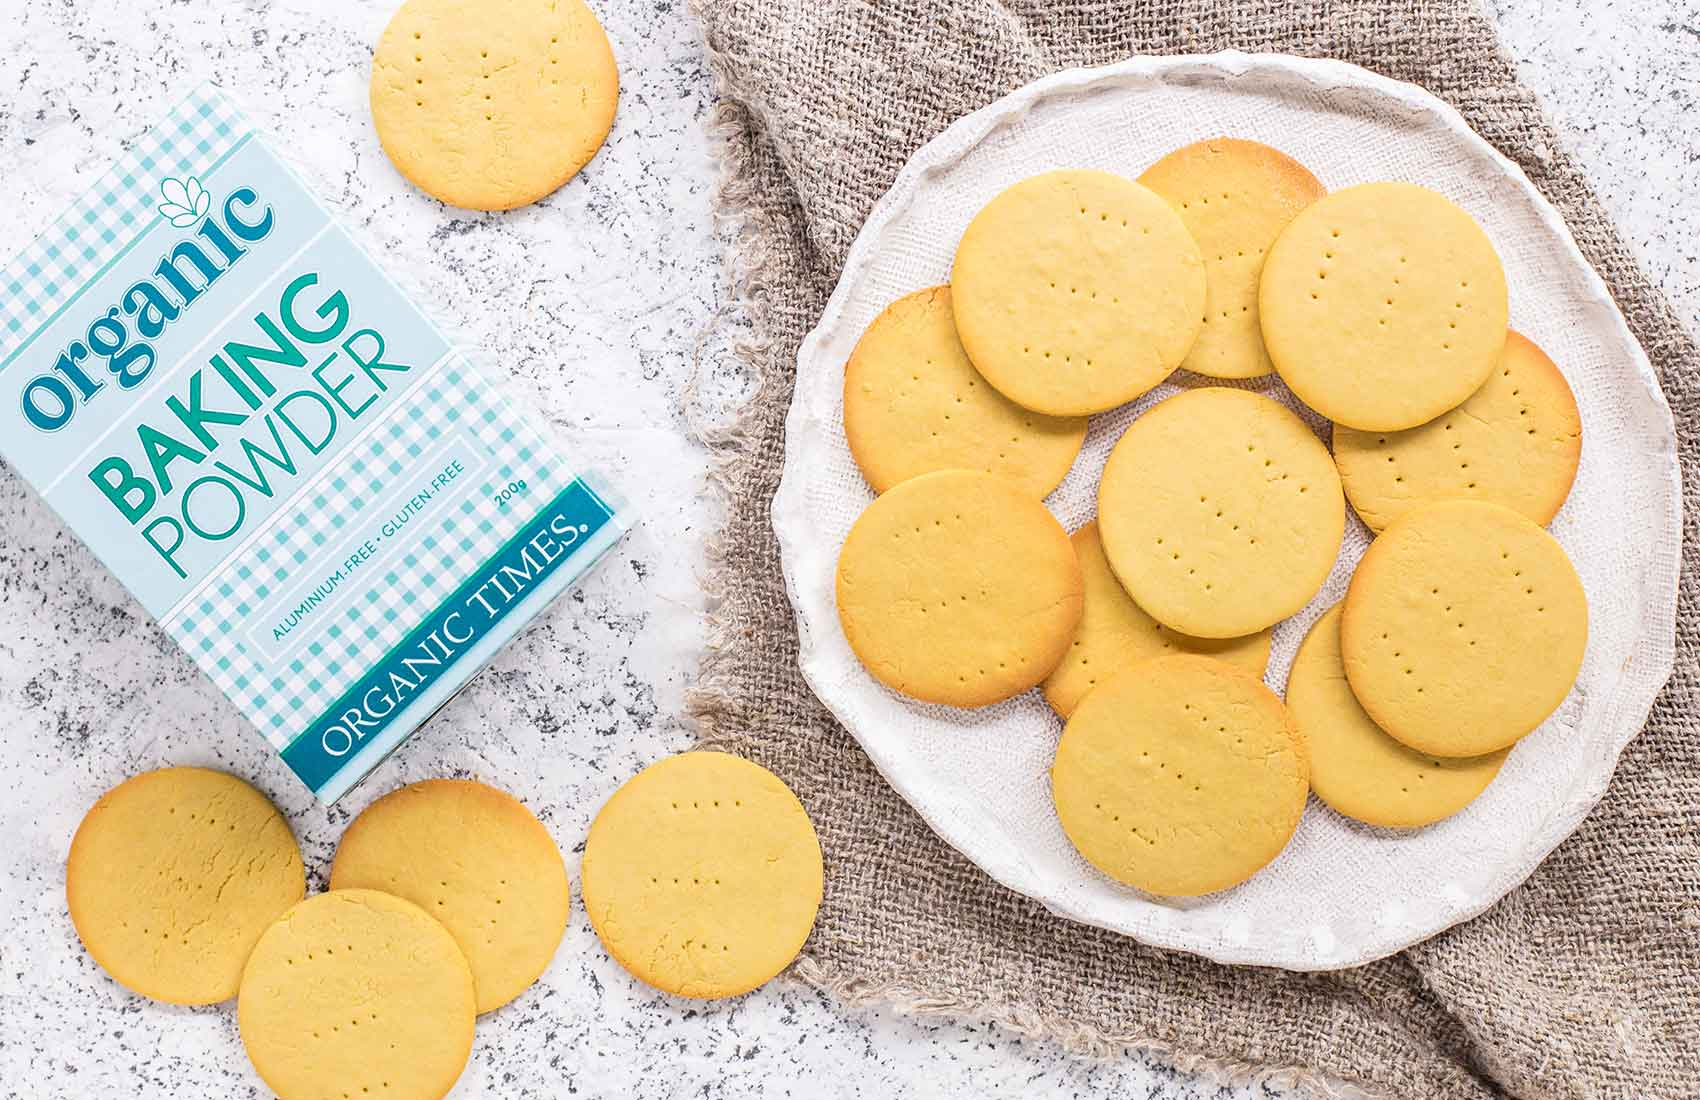 a plate of arrowroot biscuits next to organic times baking powder